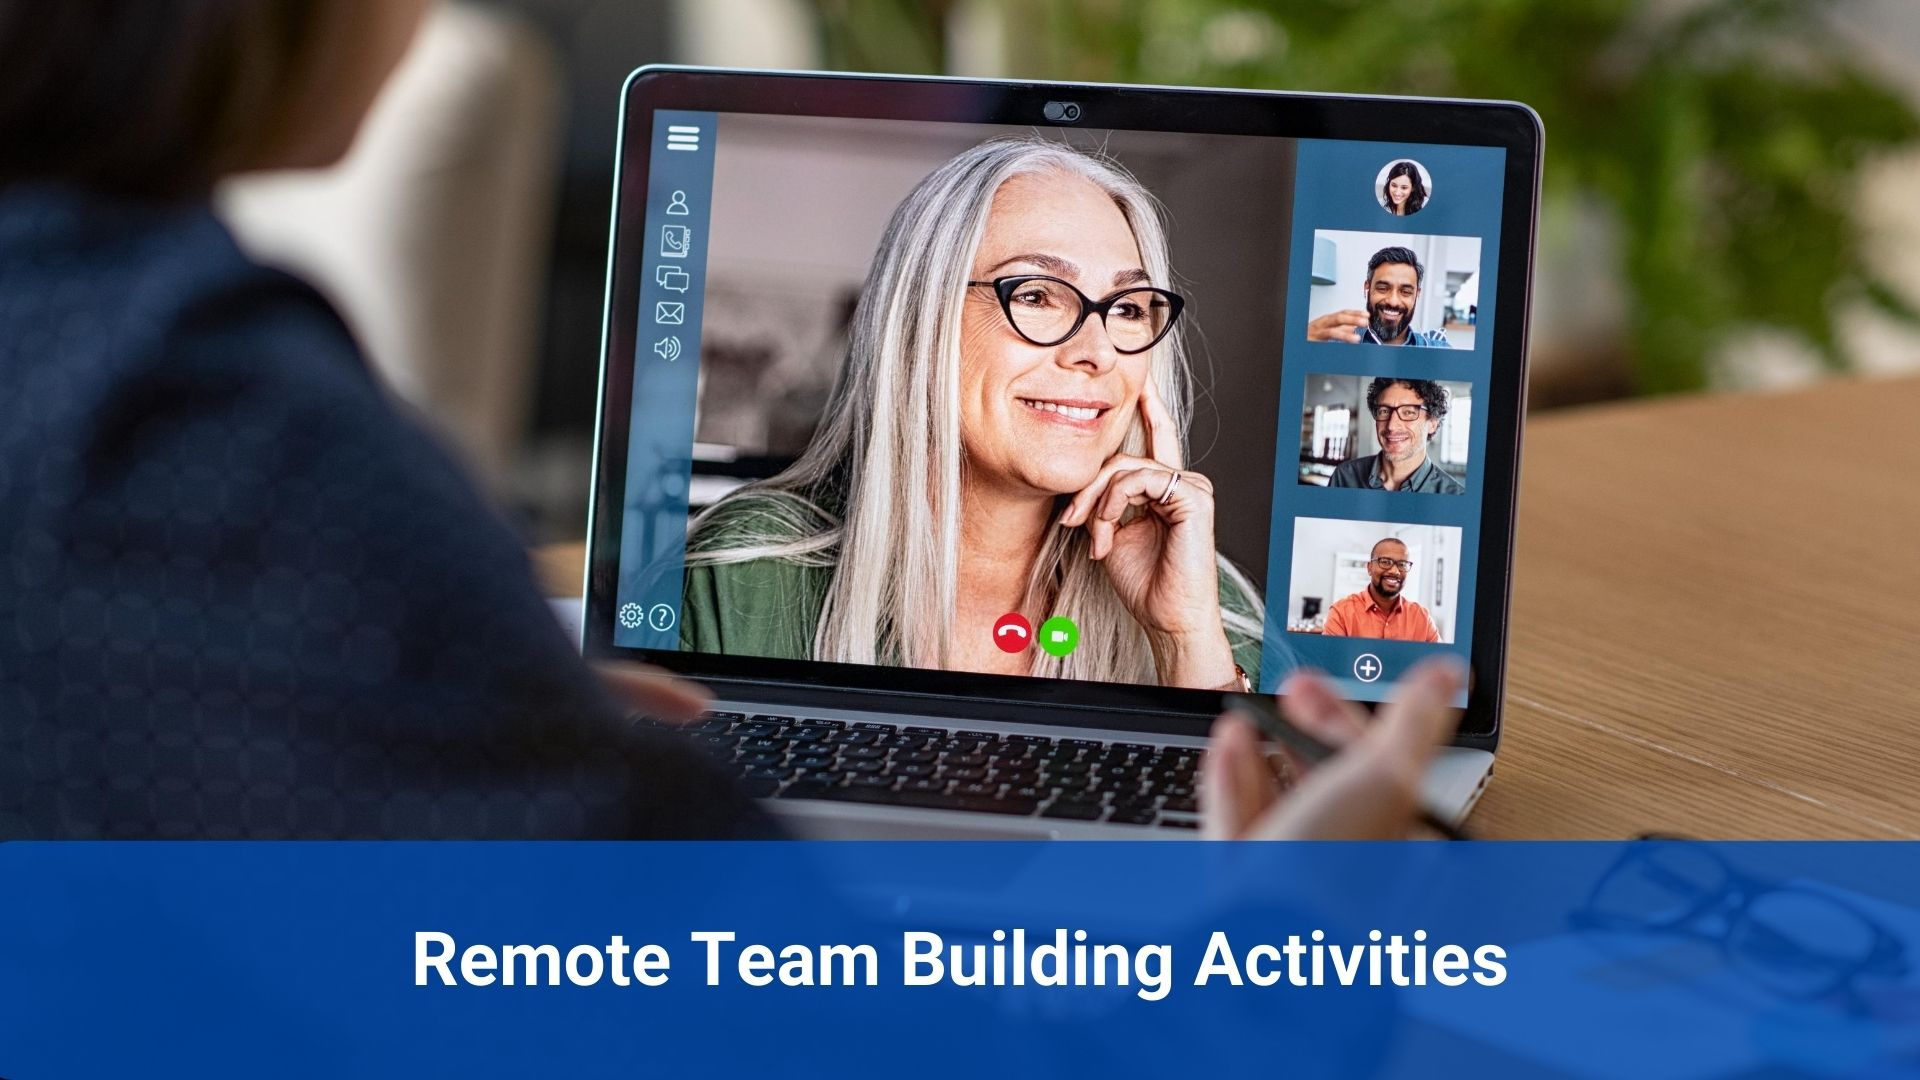 team-building-activities.jpg August 12, 2020 216 KB 1920 by 1080 pixels Edit Image Delete Permanently Alt Text Describe the purpose of the image(opens in a new tab). Leave empty if the image is purely decorative.Title team building activities